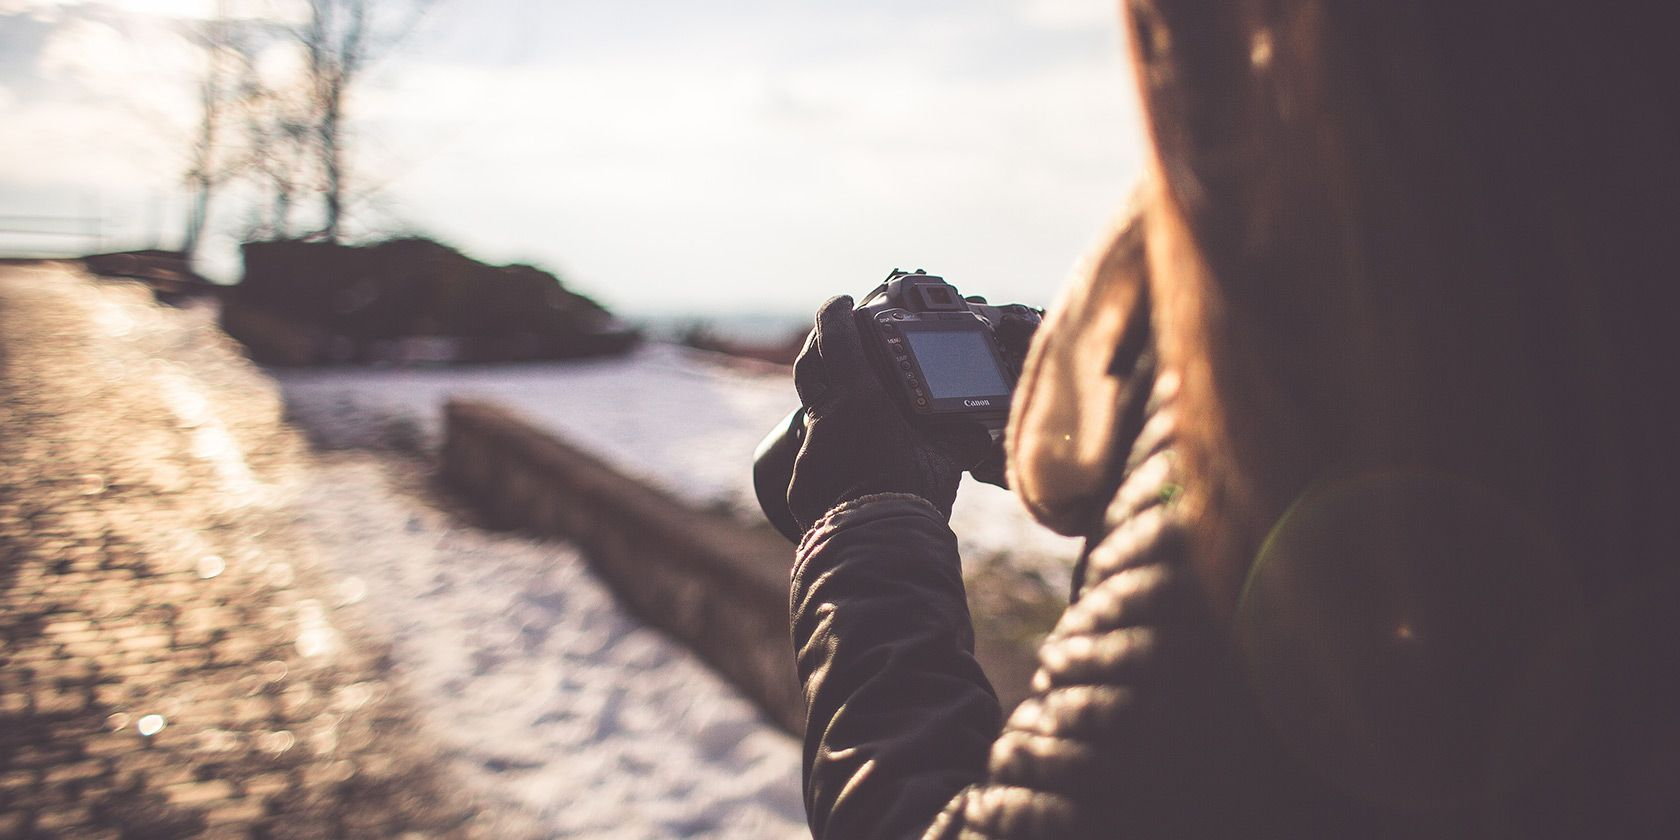 7 Skill-Building Photography Exercises That Really Work